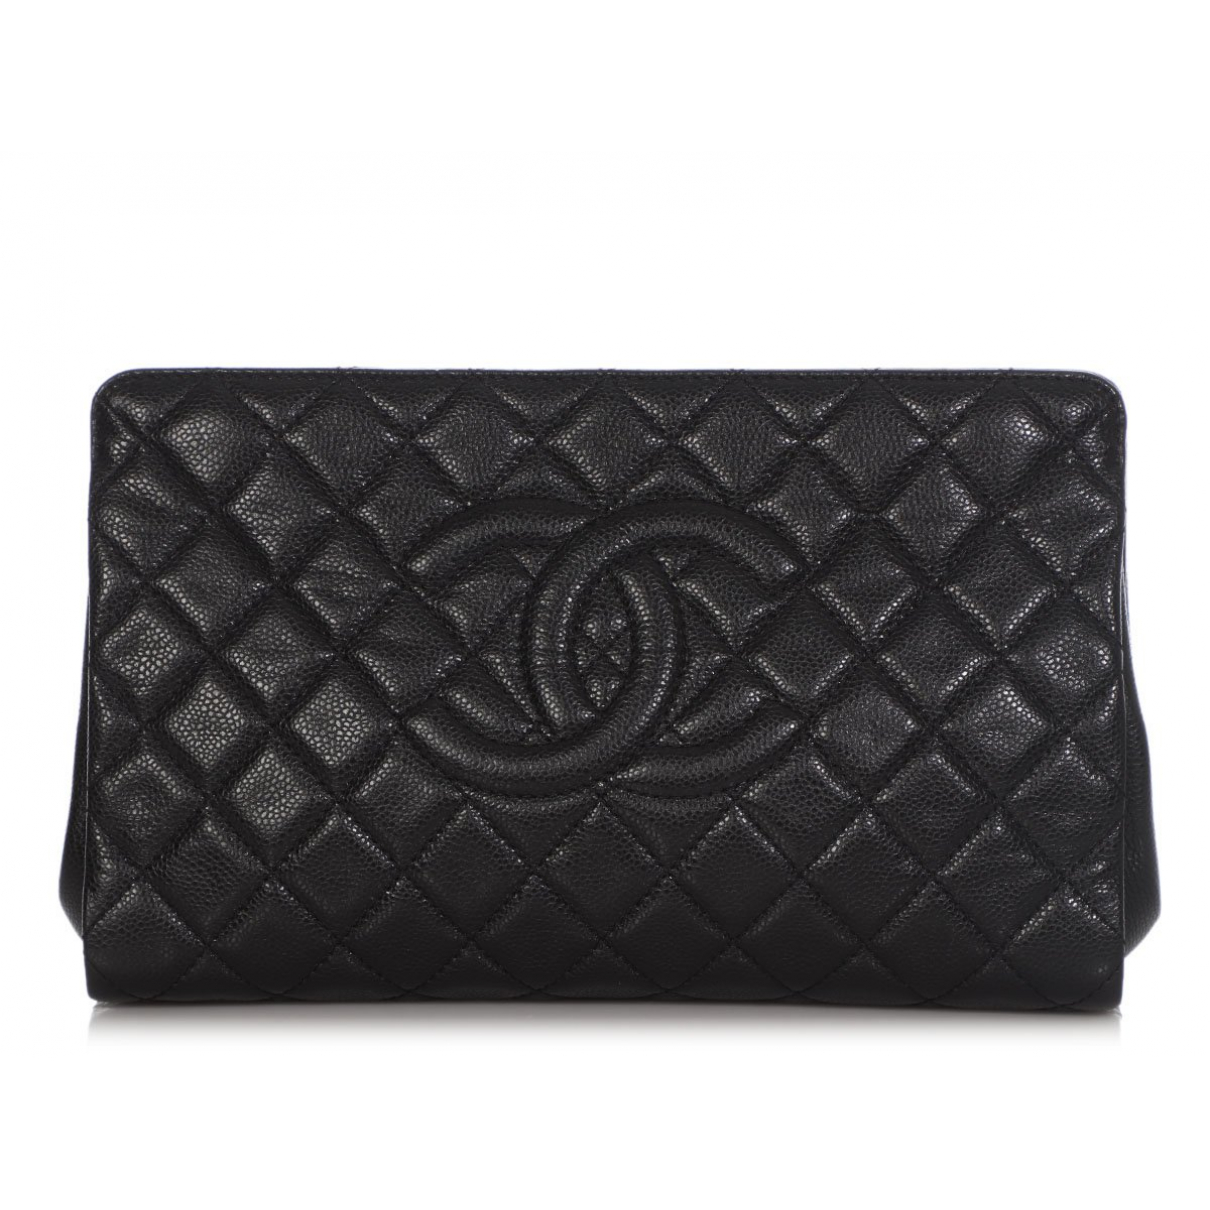 Chanel black Cloth CLUTCH BAGS